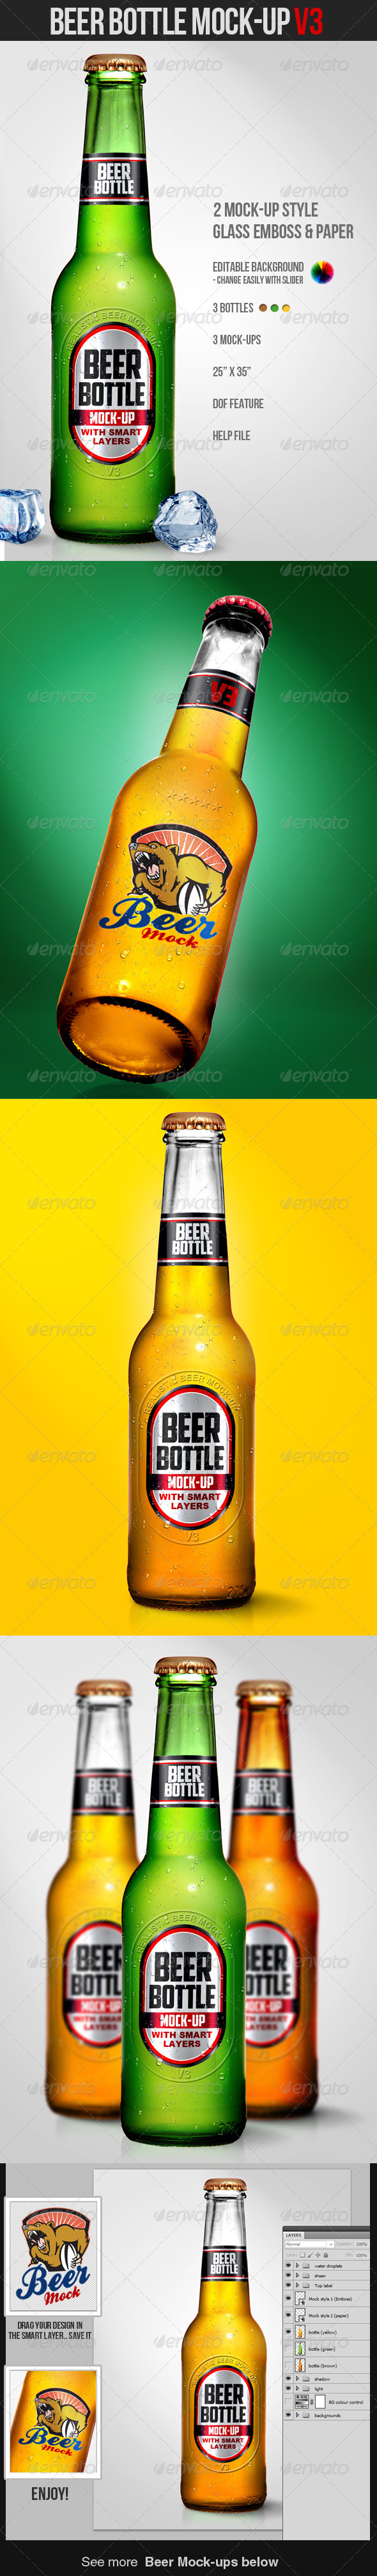 Beer Bottle Mock-Up V3 - Miscellaneous Product Mock-Ups